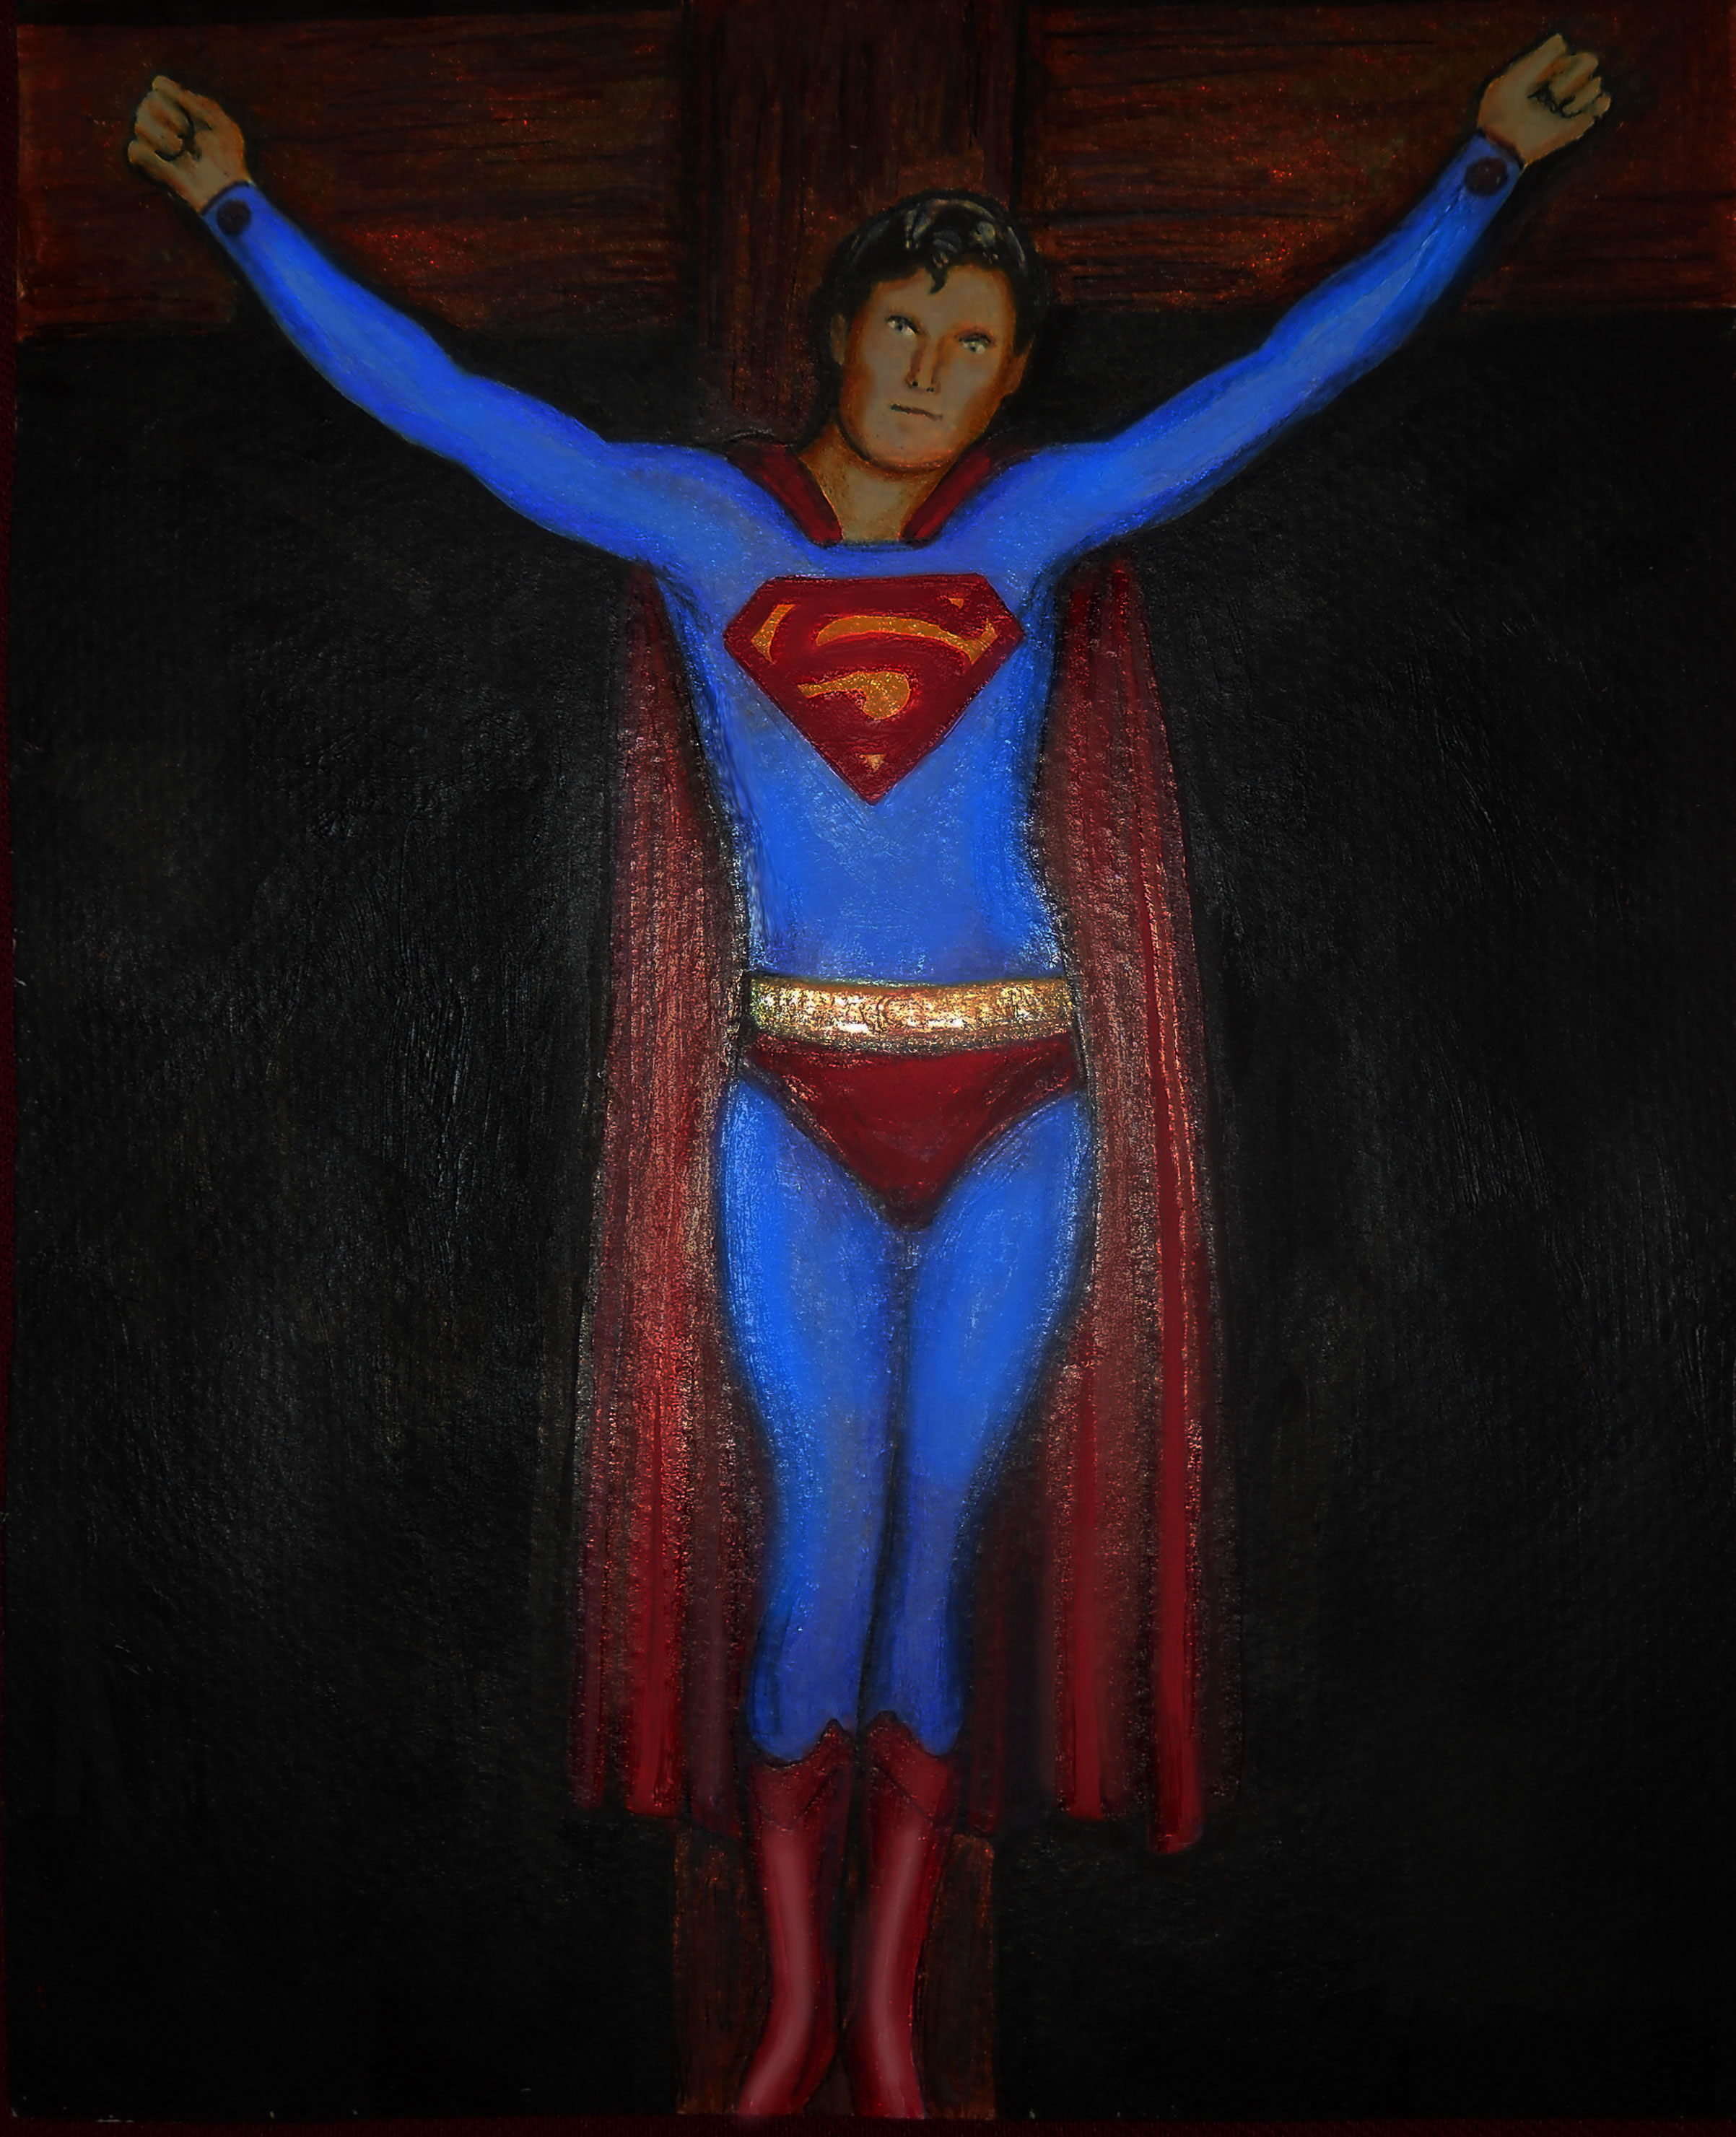 Kal-el on a cross by Bart Schechinger